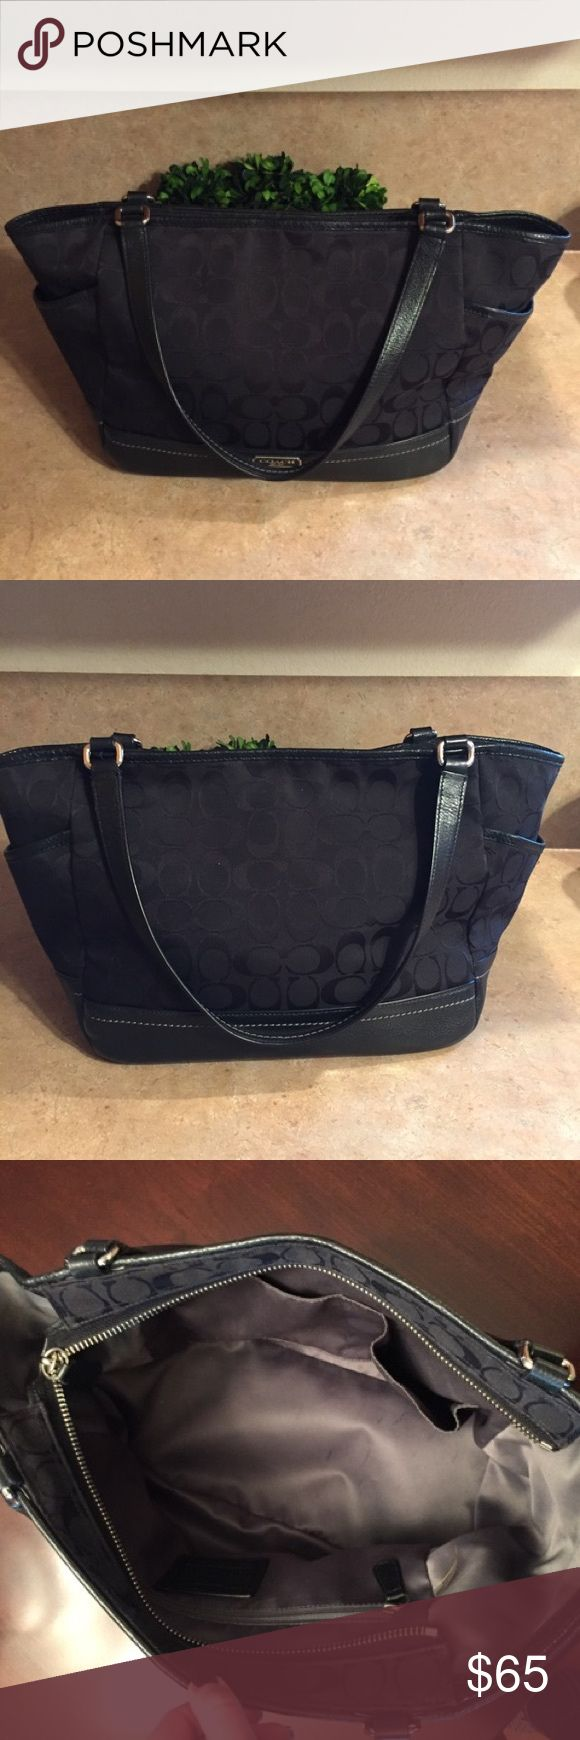 Black Coach Purse Authentic black coach purse. Used generously, but still in good condition! Zipper enclosure. No rips or tears on inside of purse, straps, or on bottom of the purse. Pen marks can be seen in the bottom of the purse from normal use. It has an inside zipper & two small inner pockets. There are also two pockets on the outside sides of the purse. Inside one these pockets, there is red ink, which can be seen in the last photo.  The red ink cannot be seen unless you open up the…